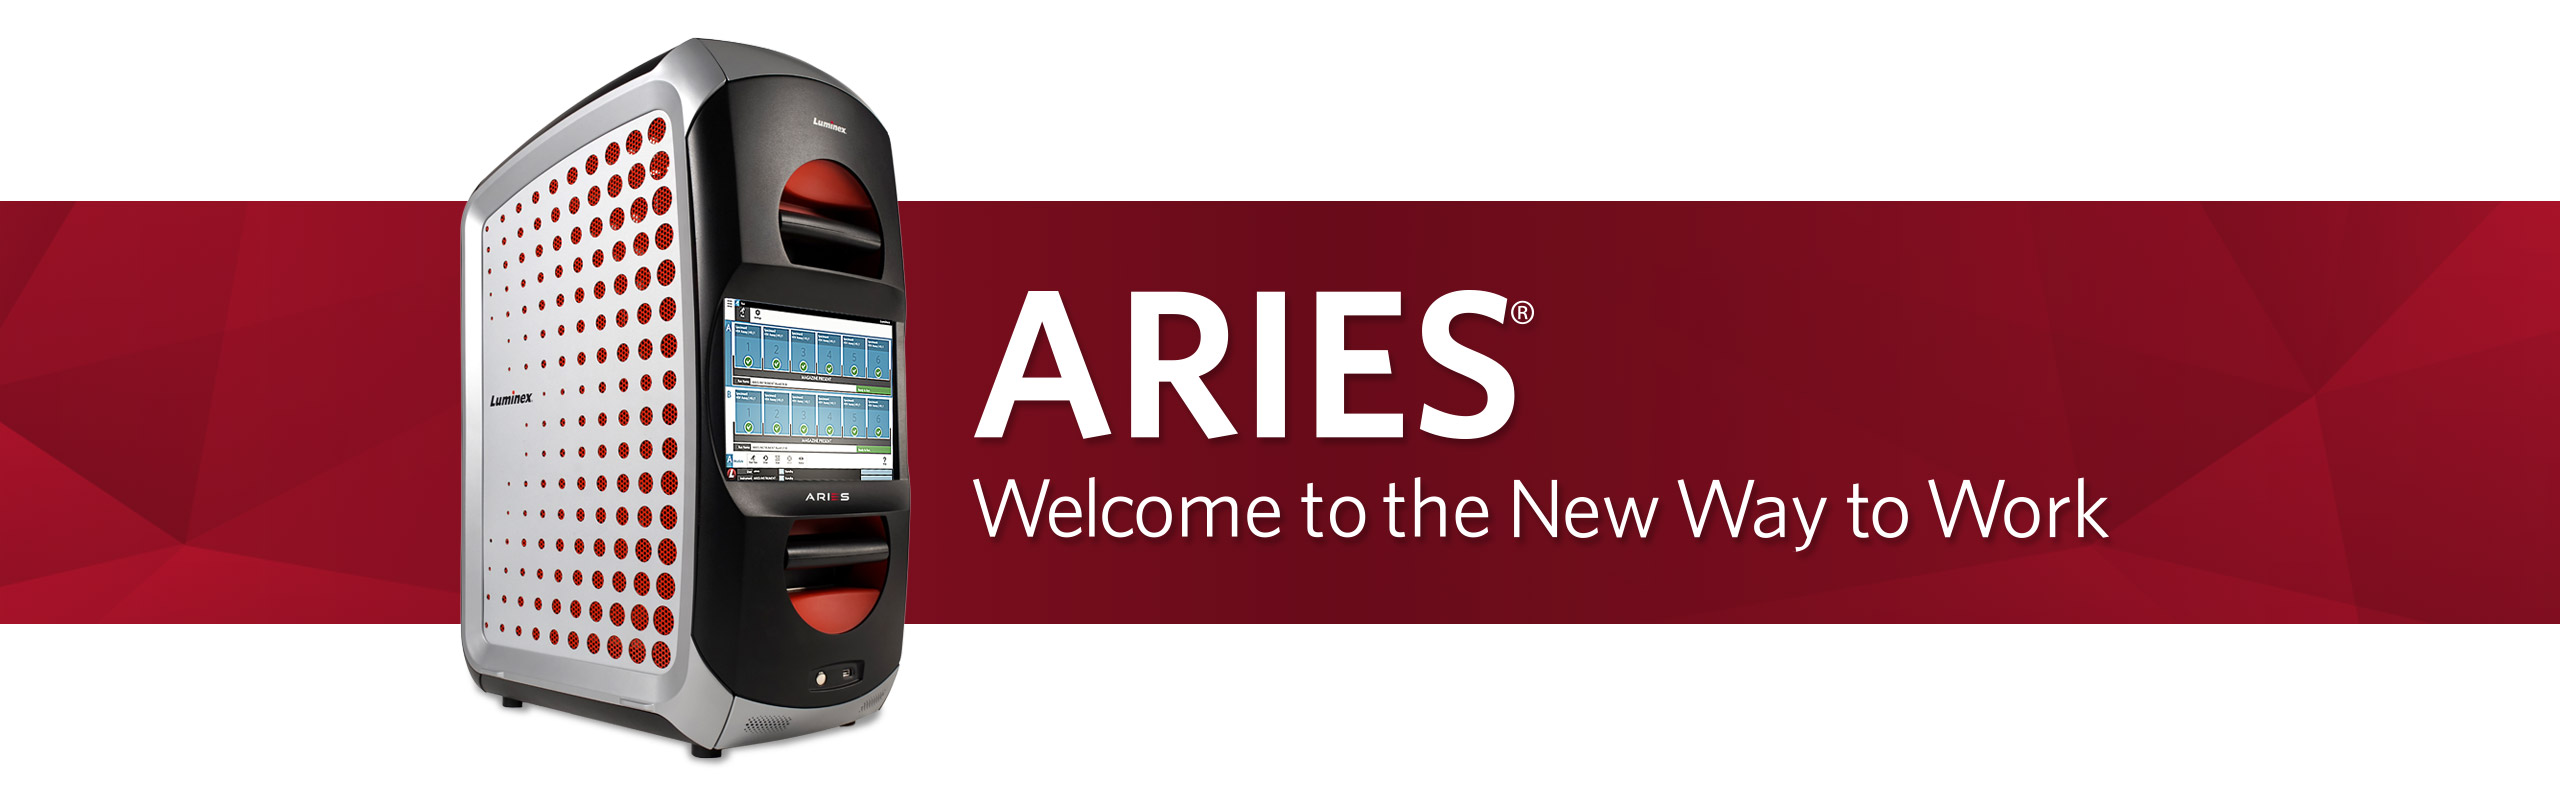 ARIES® | Welcome to the New Way to Work